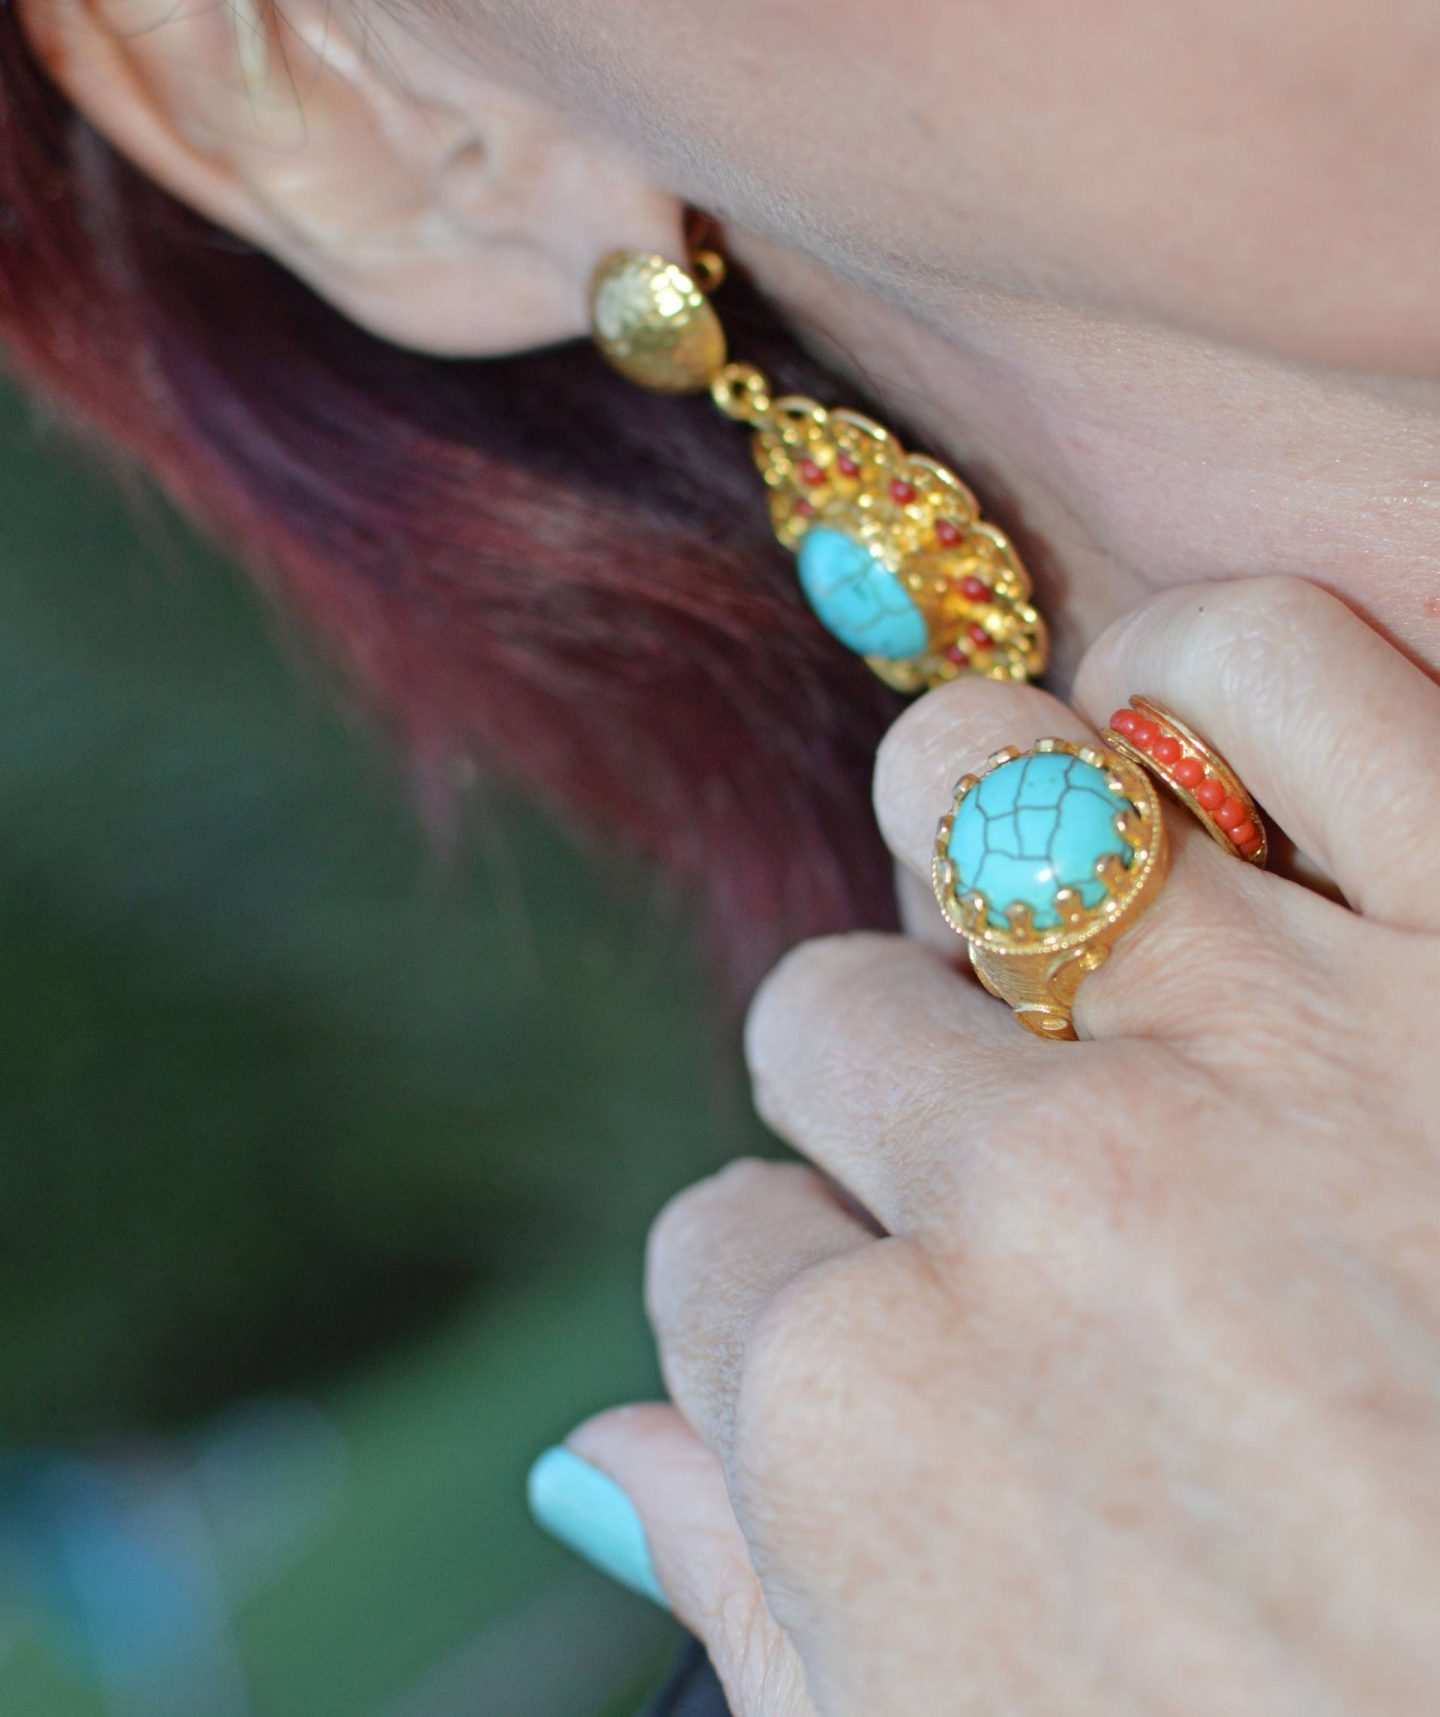 Match Made in Seven: Best of British, Ottoman Hands turquoise ring and earrings